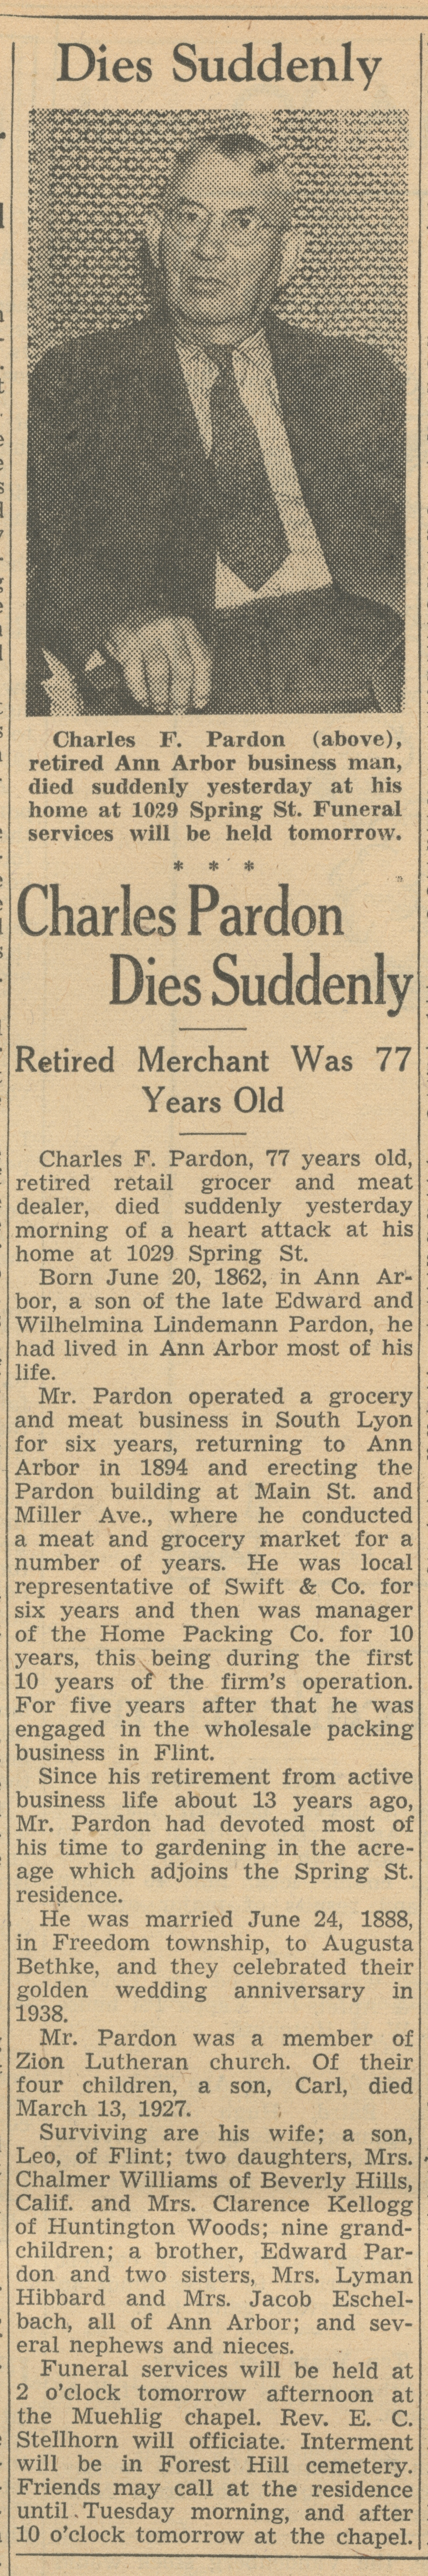 Charles Pardon Dies Suddenly image